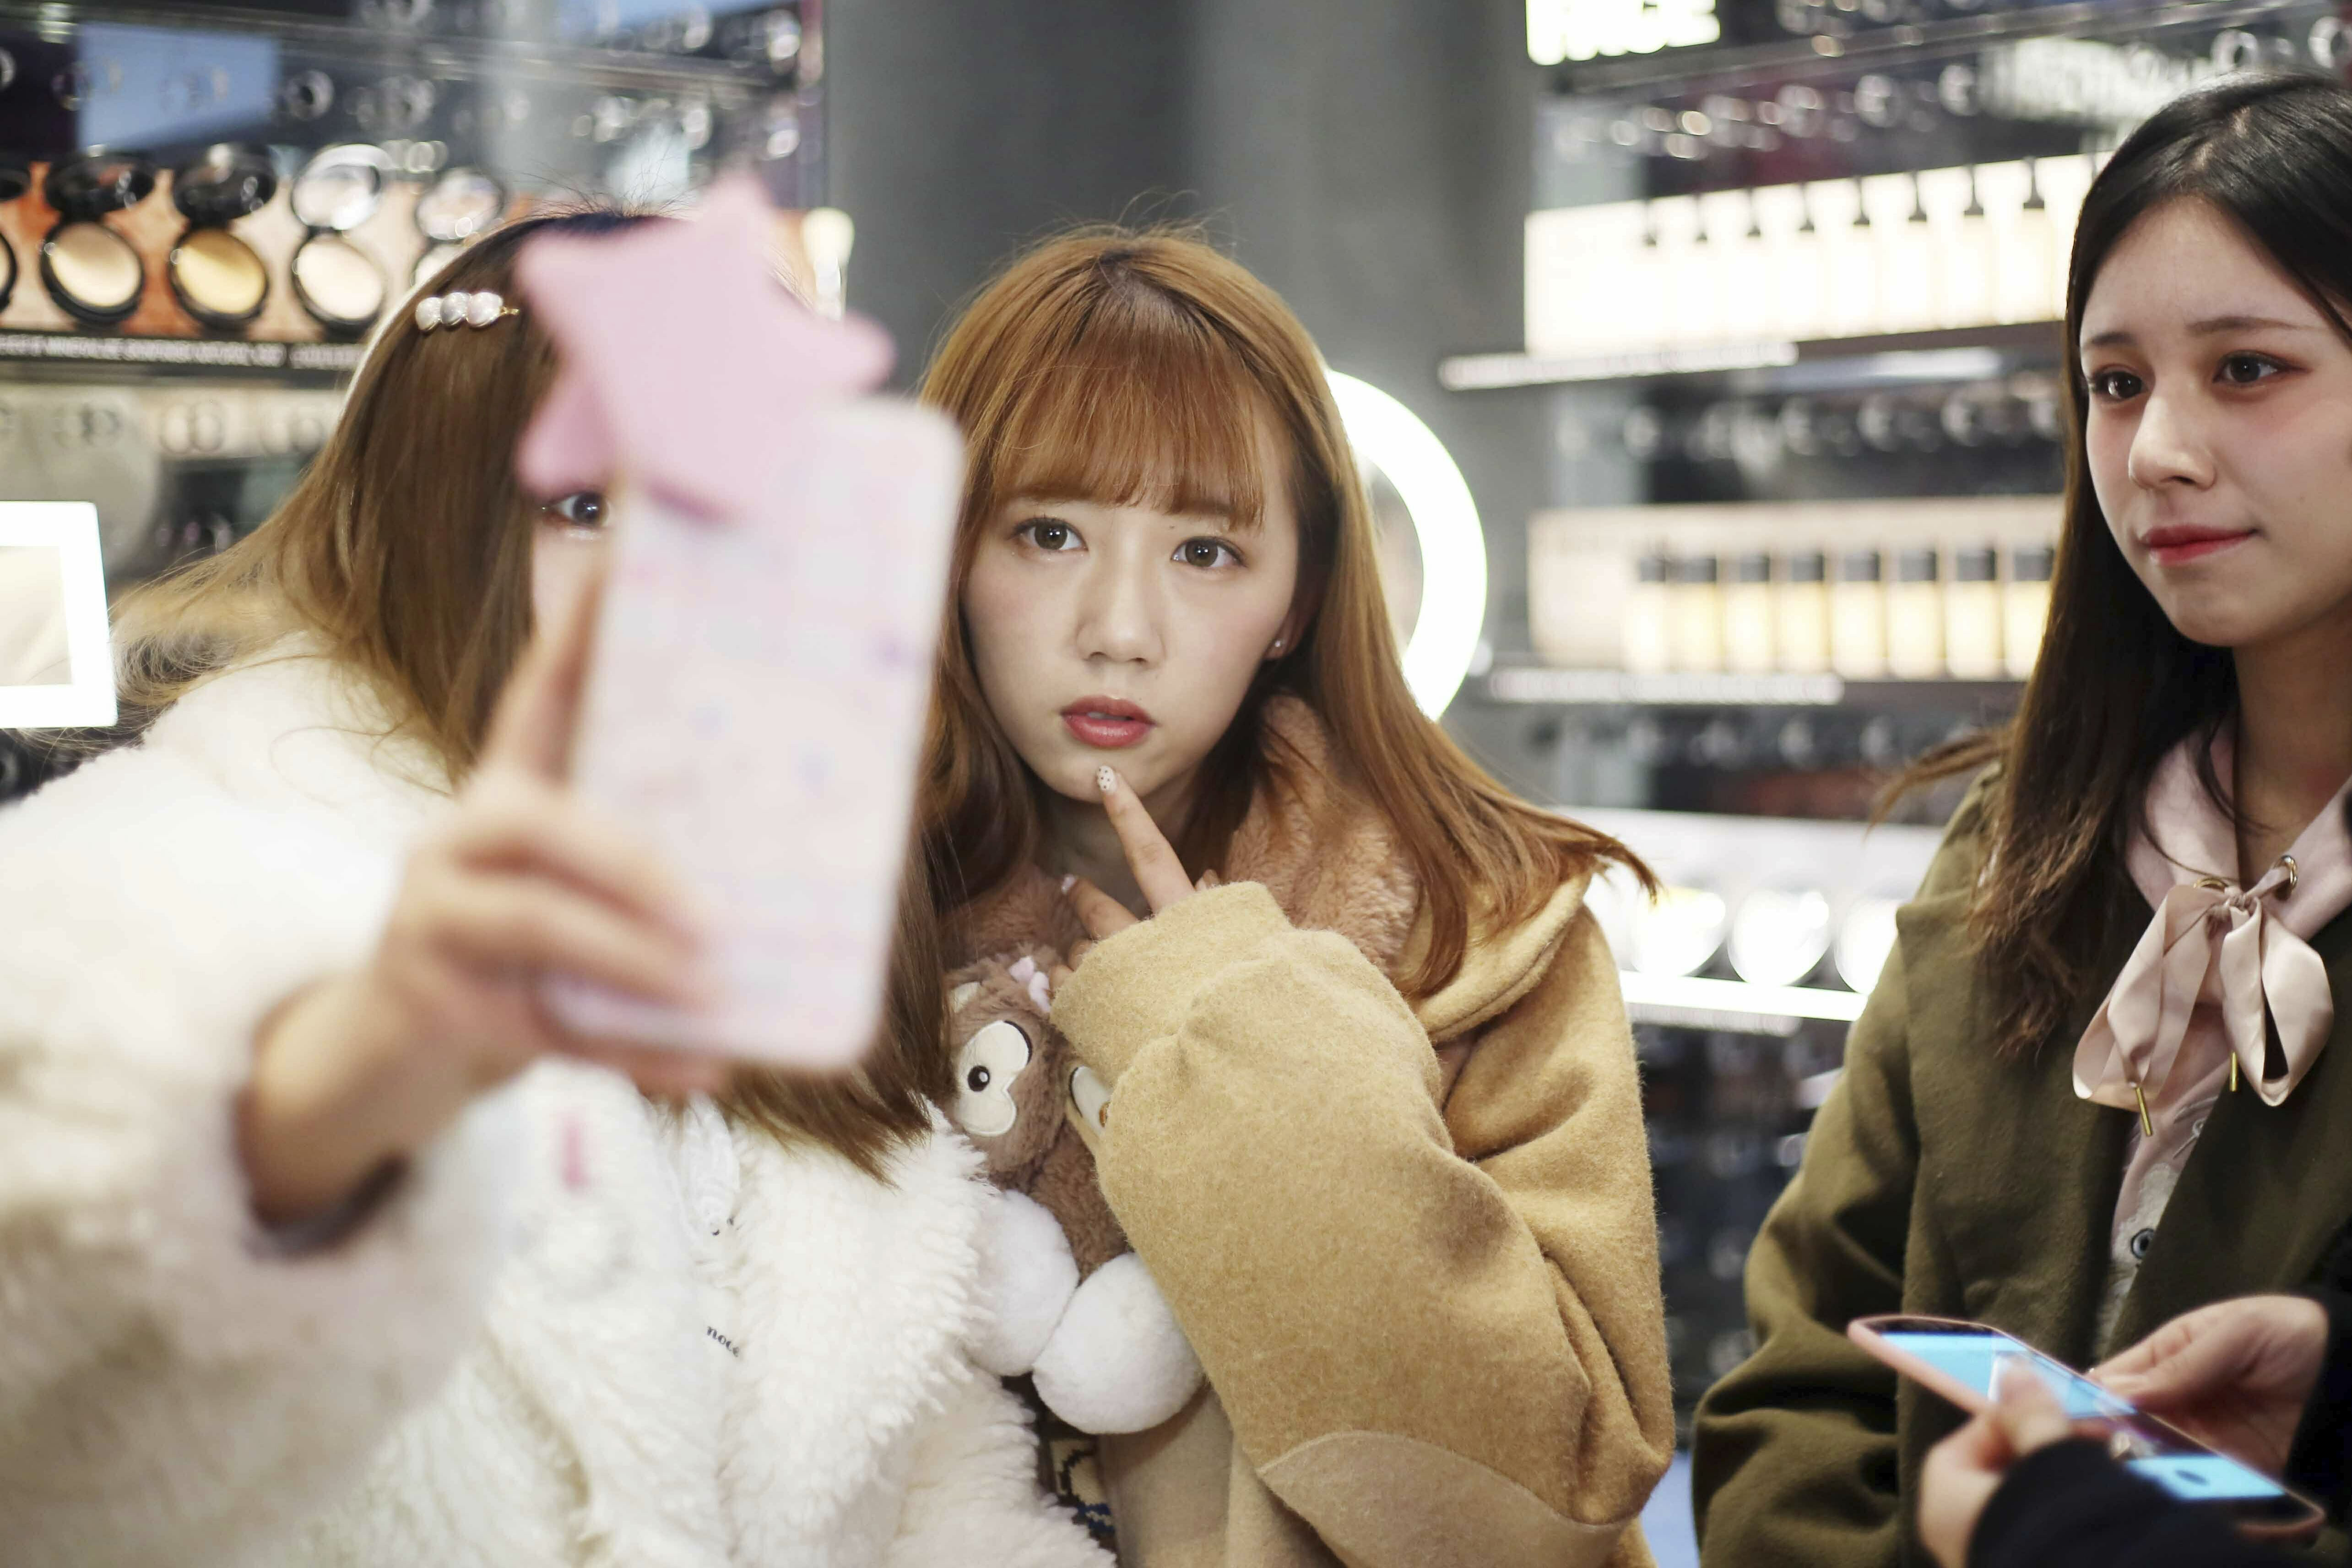 """Customers pose for selfies at the Huaihai Road flagship store of makeup brand MAC Cosmetics themed on Tencent's MOBA """"King of Glory"""" in Shanghai, China, 17 January 2019. The Huaihai Road flagship store of makeup brand MAC has been changed into a store themed on Tencent's MOBA 'King of Glory'. Themed limited lipstick collections are launched at the store.  (Imaginechina via AP Images)"""